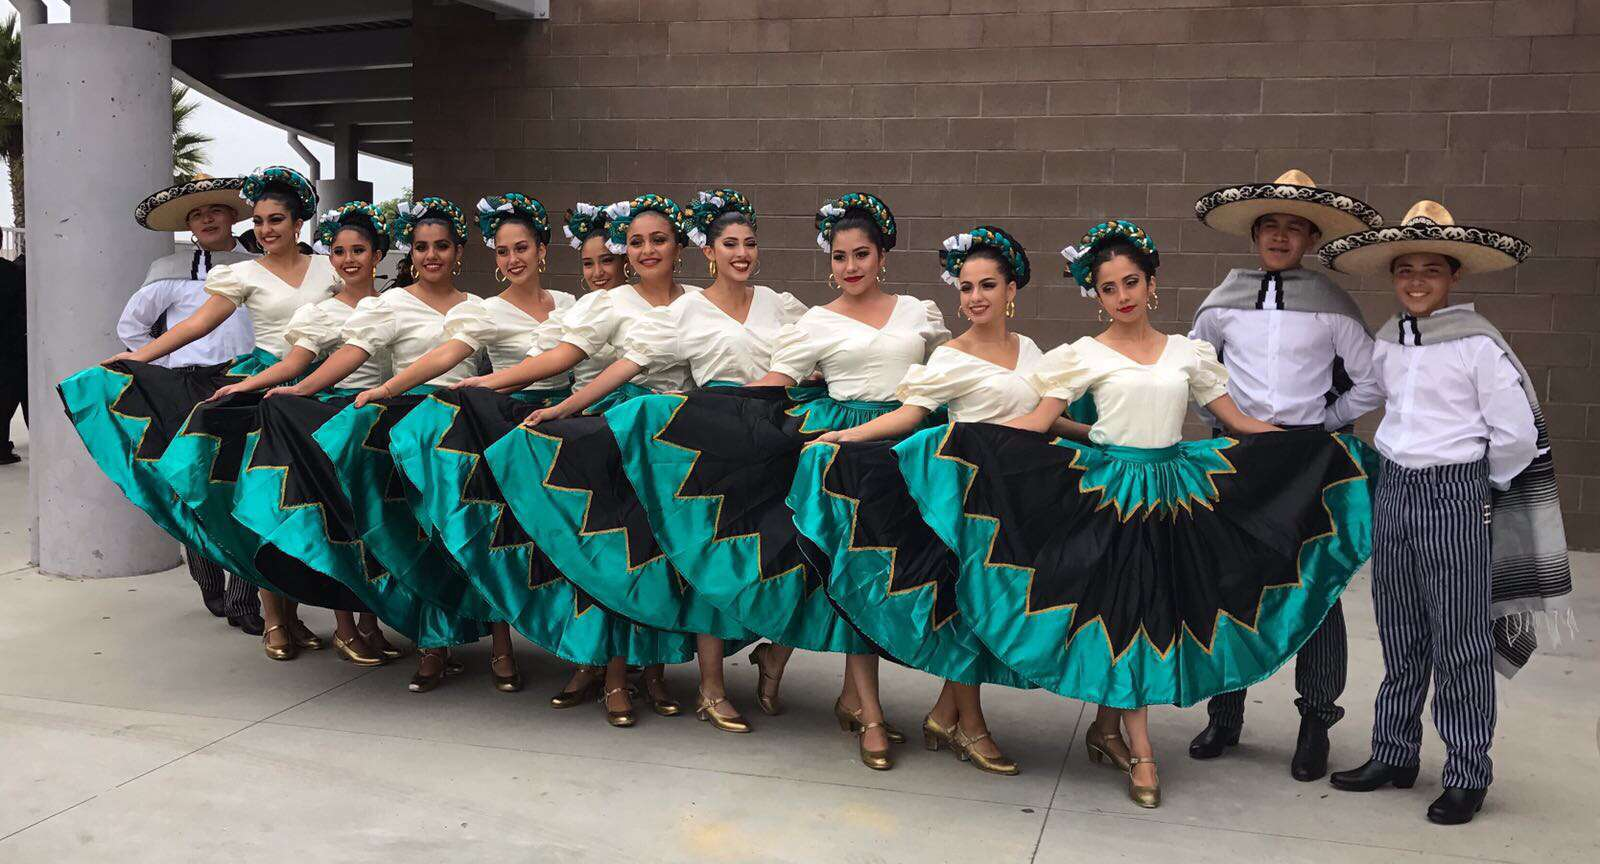 My Folklorico dance team posing before a performance.